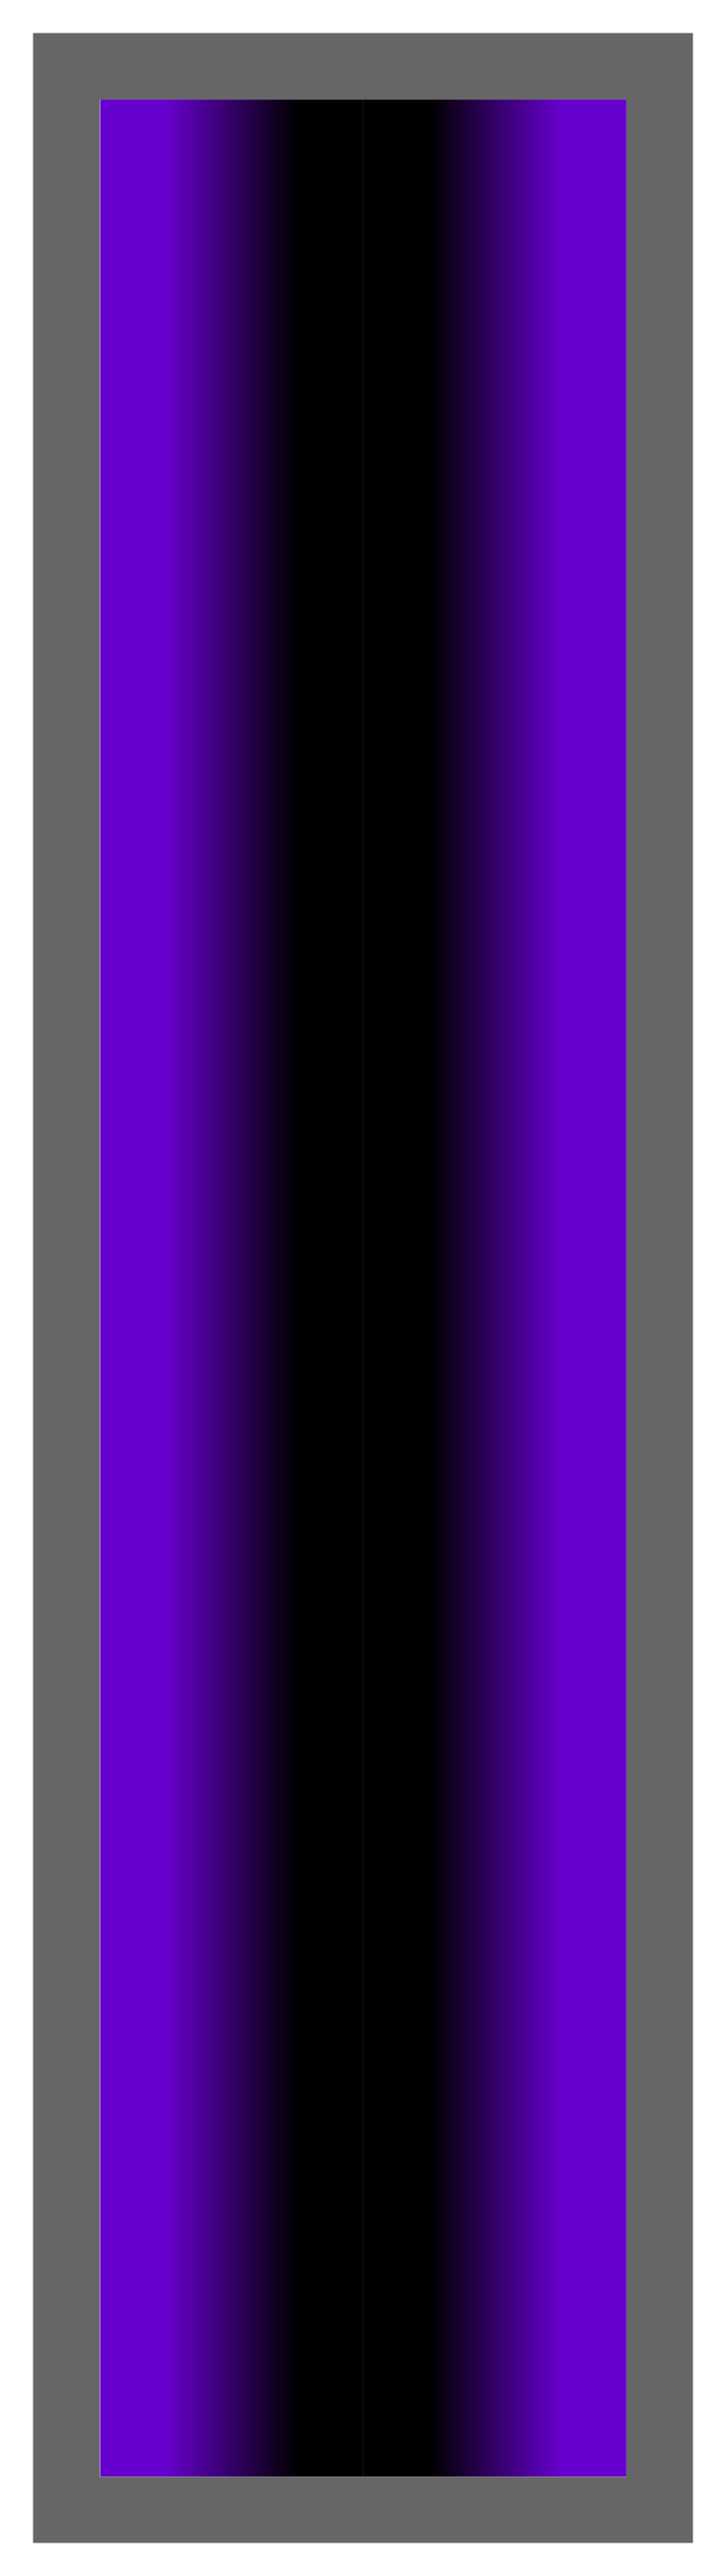 Purple-Black-Purple Ombre Stripe